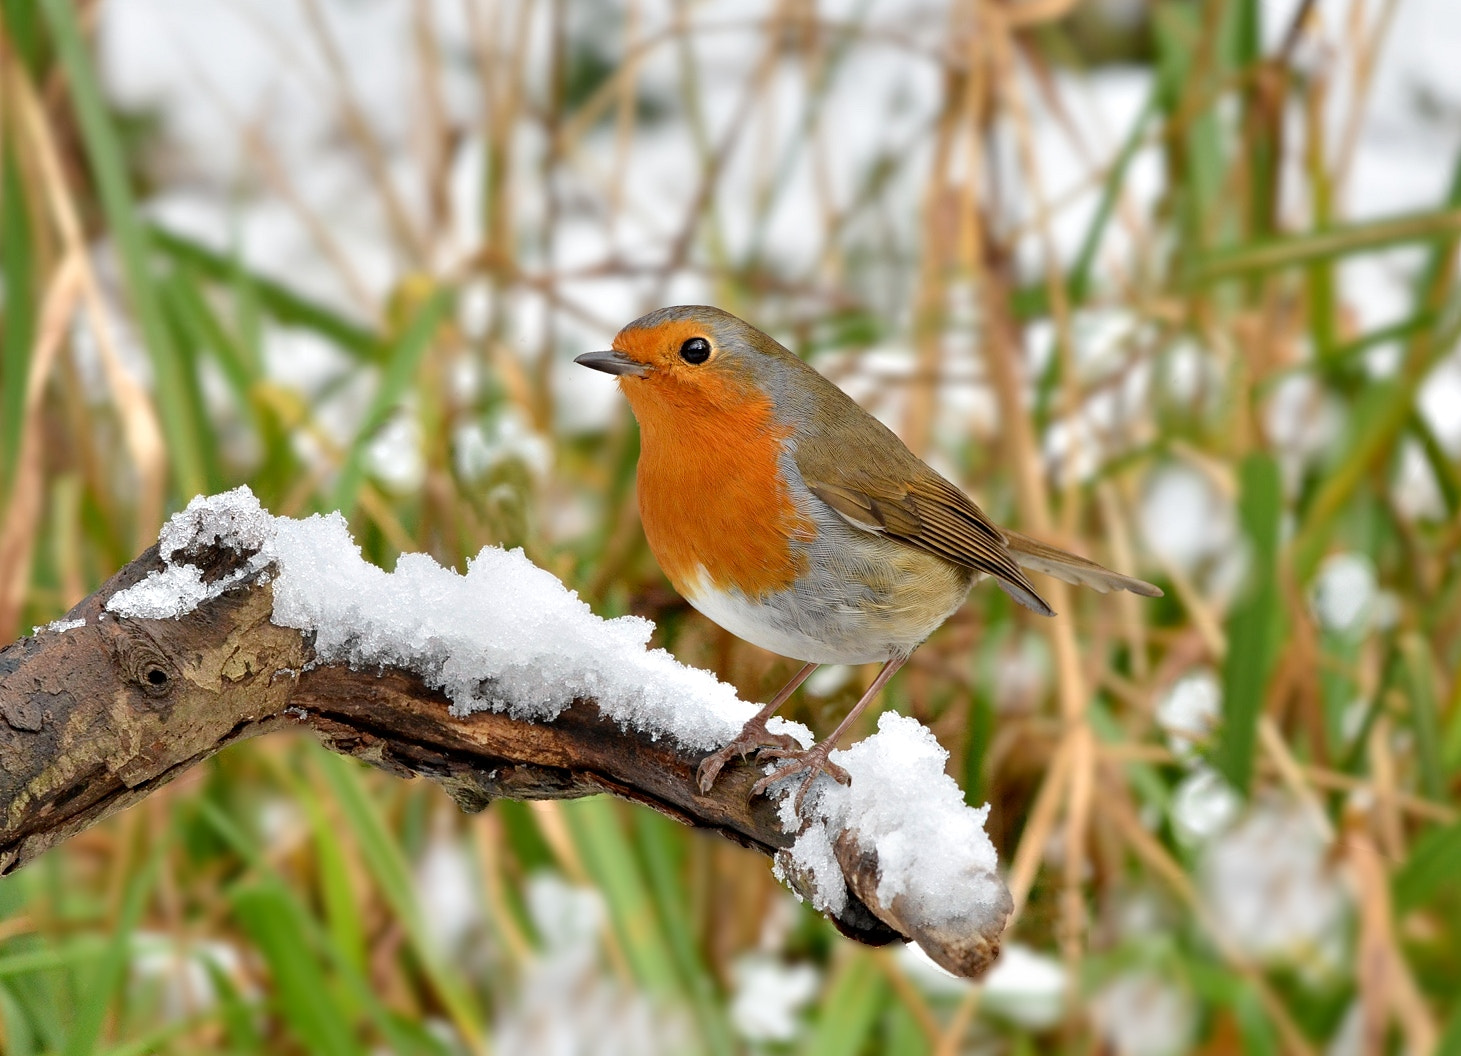 Photograph Robin by John Robinson on 500px